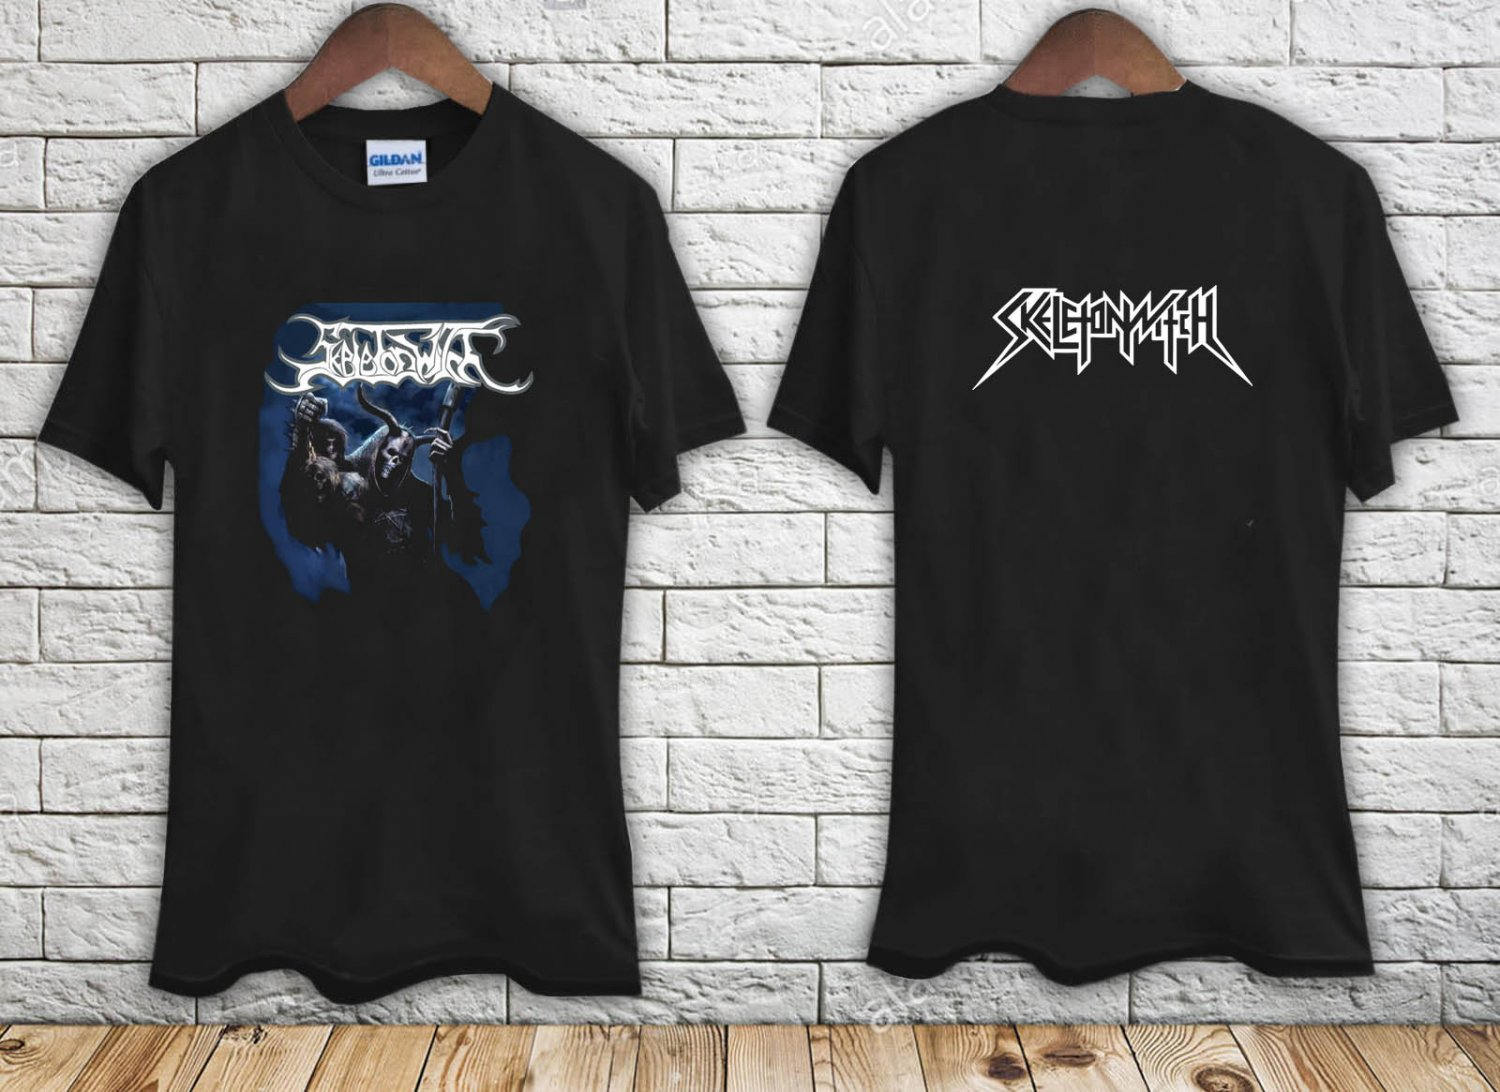 SKELETONWITCH (At One With The Shadows) black t-shirt tshirt shirts tee SIZE M